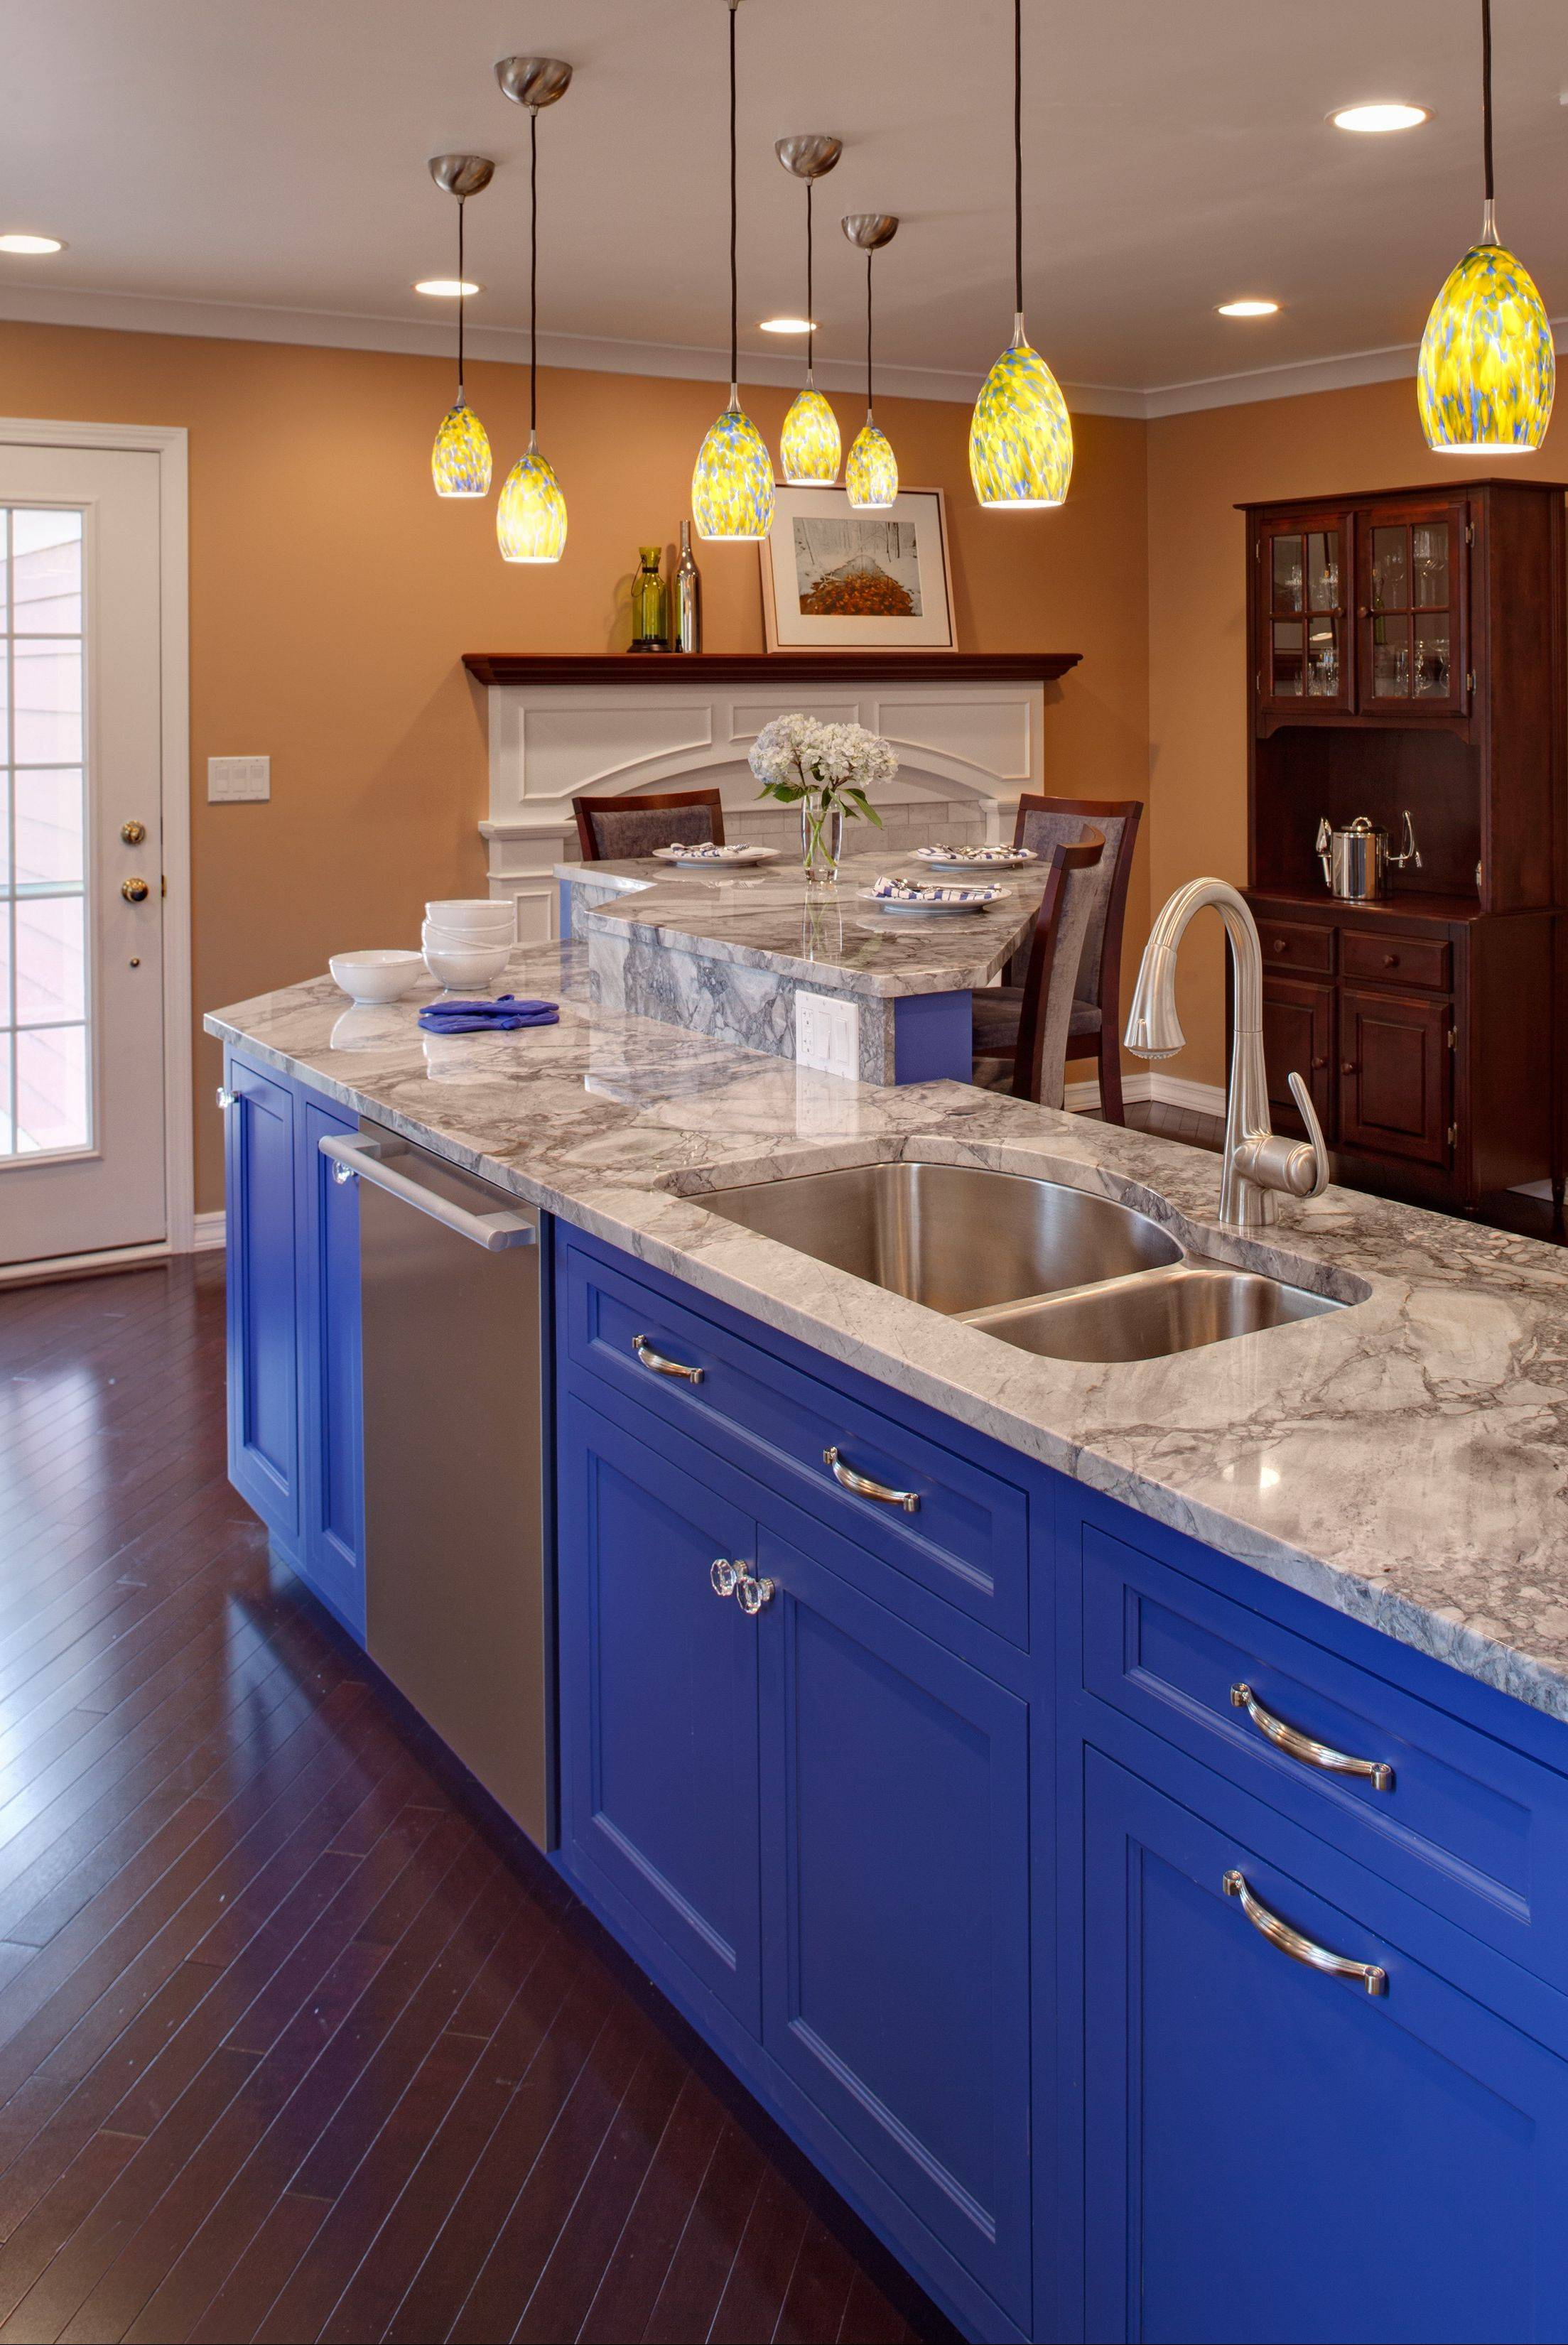 Terry Kenney fulfilled her Wheaton clients' wishes for really, really blue cabinets, above. Kenney balanced out the color with white perimeter cabinets and a gray-and-white countertop, below.